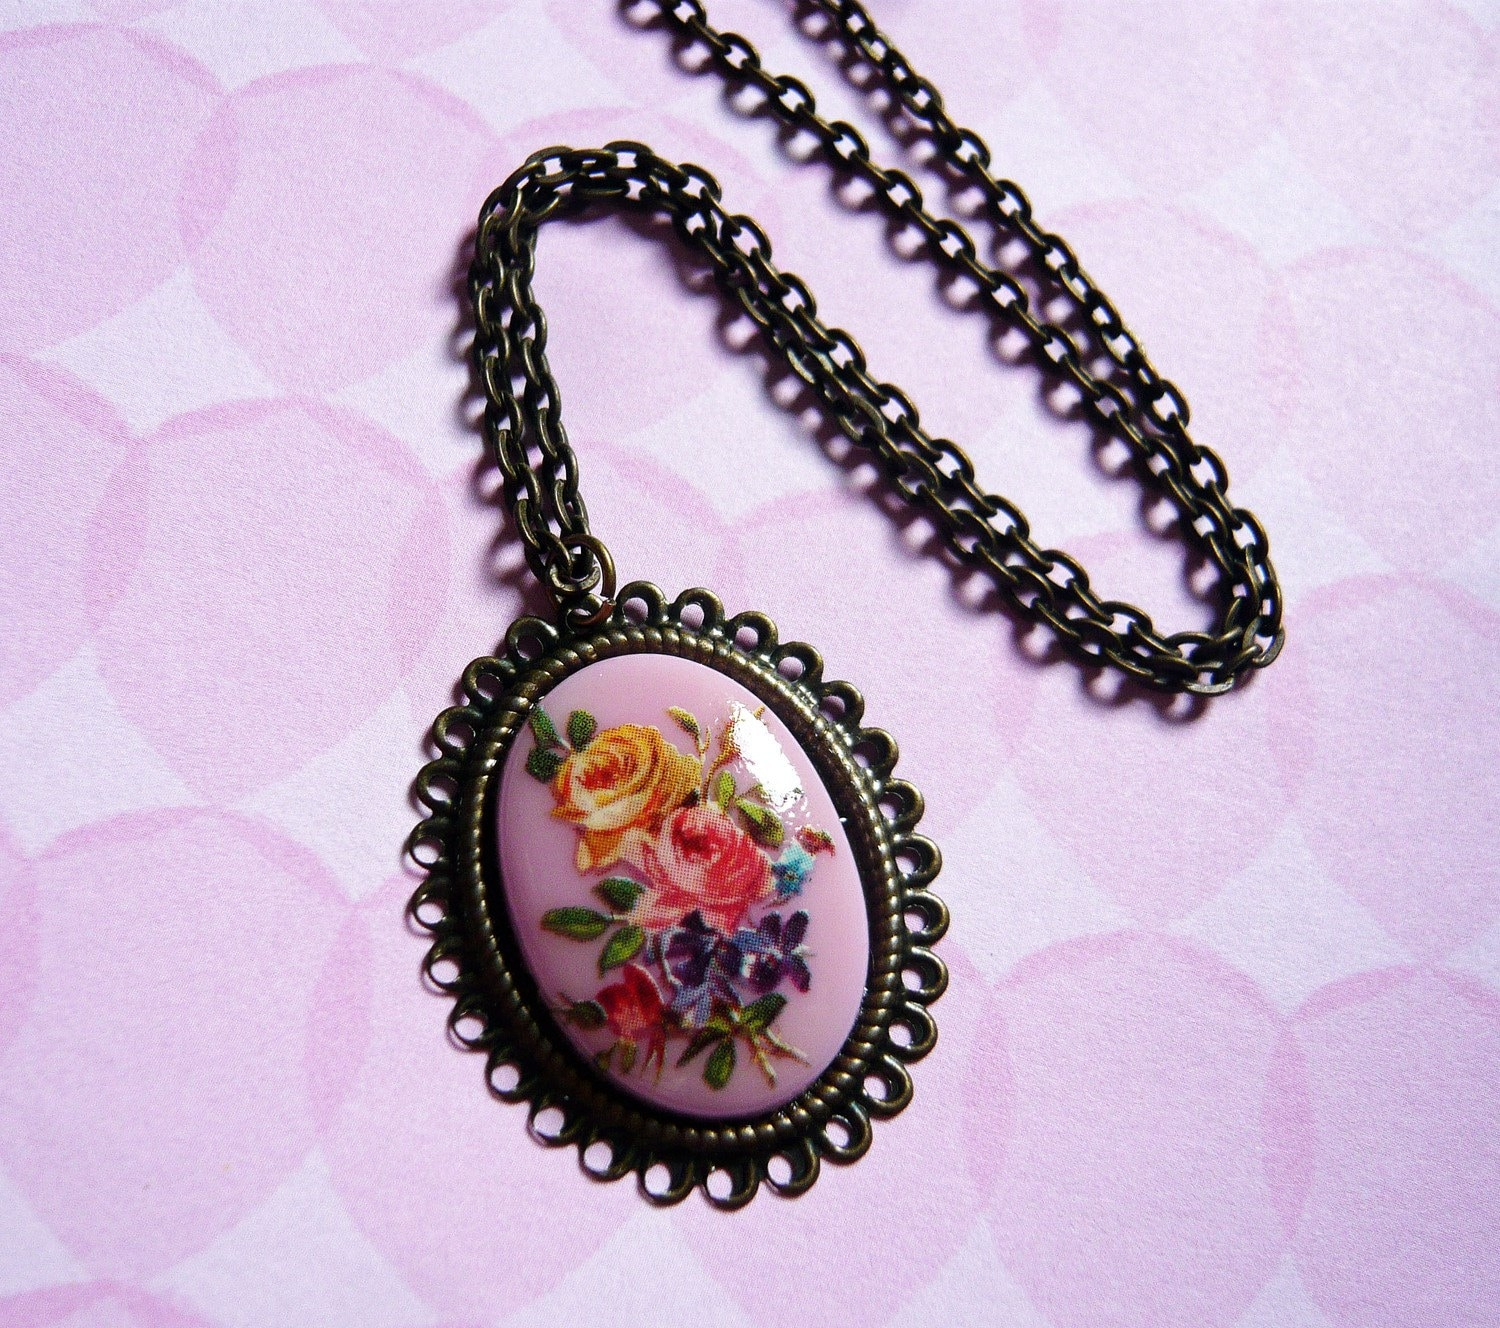 Lilac Floral Cameo Necklace by MaruMaru on Etsy from etsycom